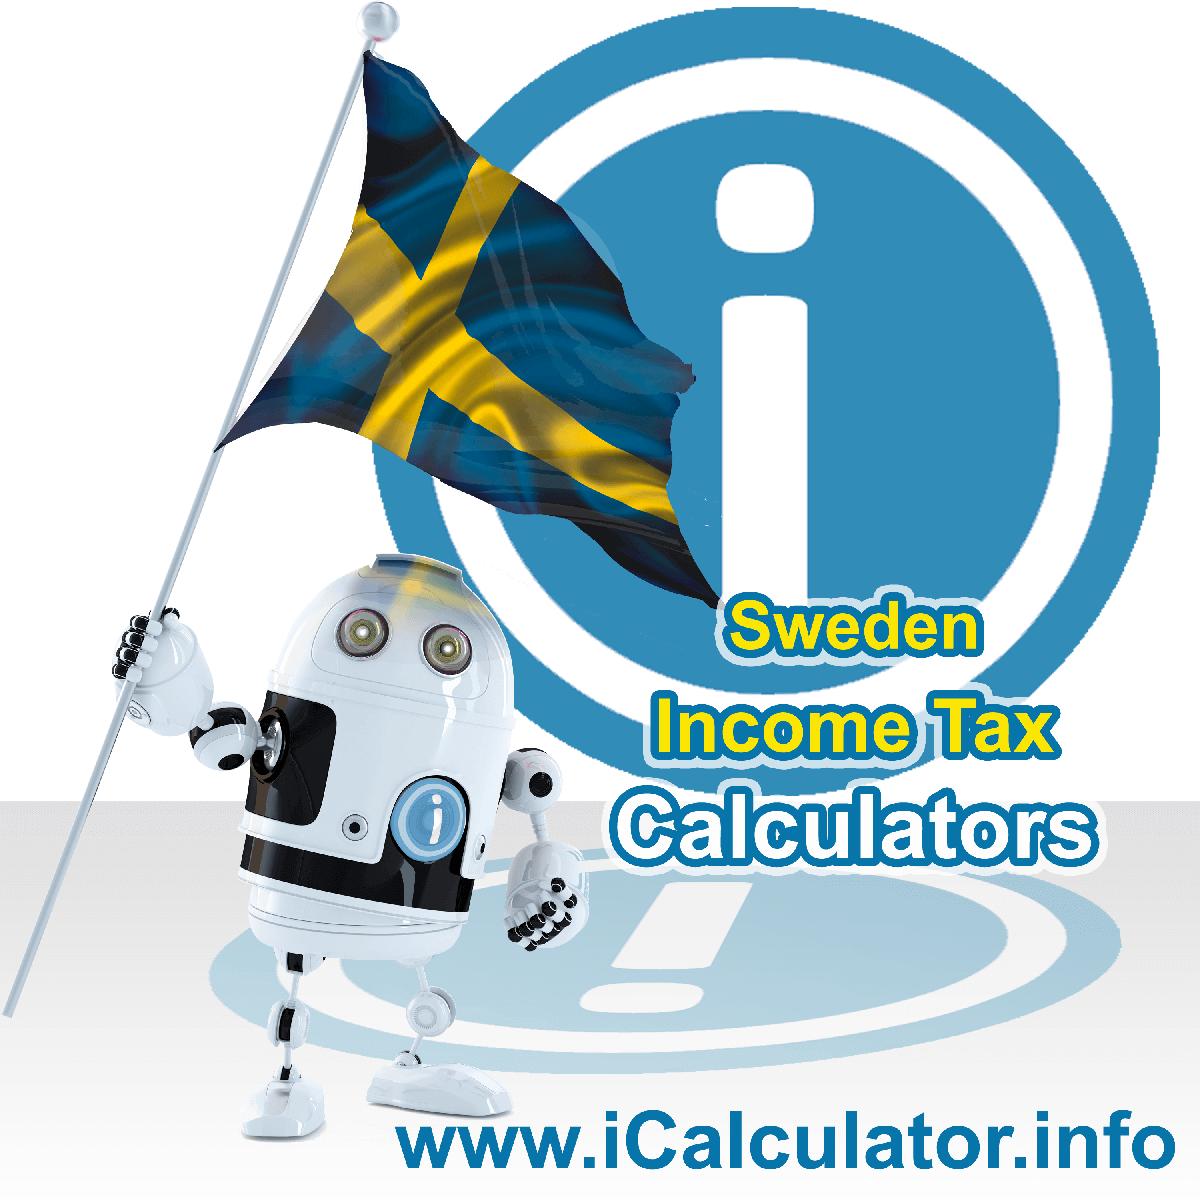 Sweden Income Tax Calculator. This image shows a new employer in Sweden calculating the annual payroll costs based on multiple payroll payments in one year in Sweden using the Sweden income tax calculator to understand their payroll costs in Sweden in 2021